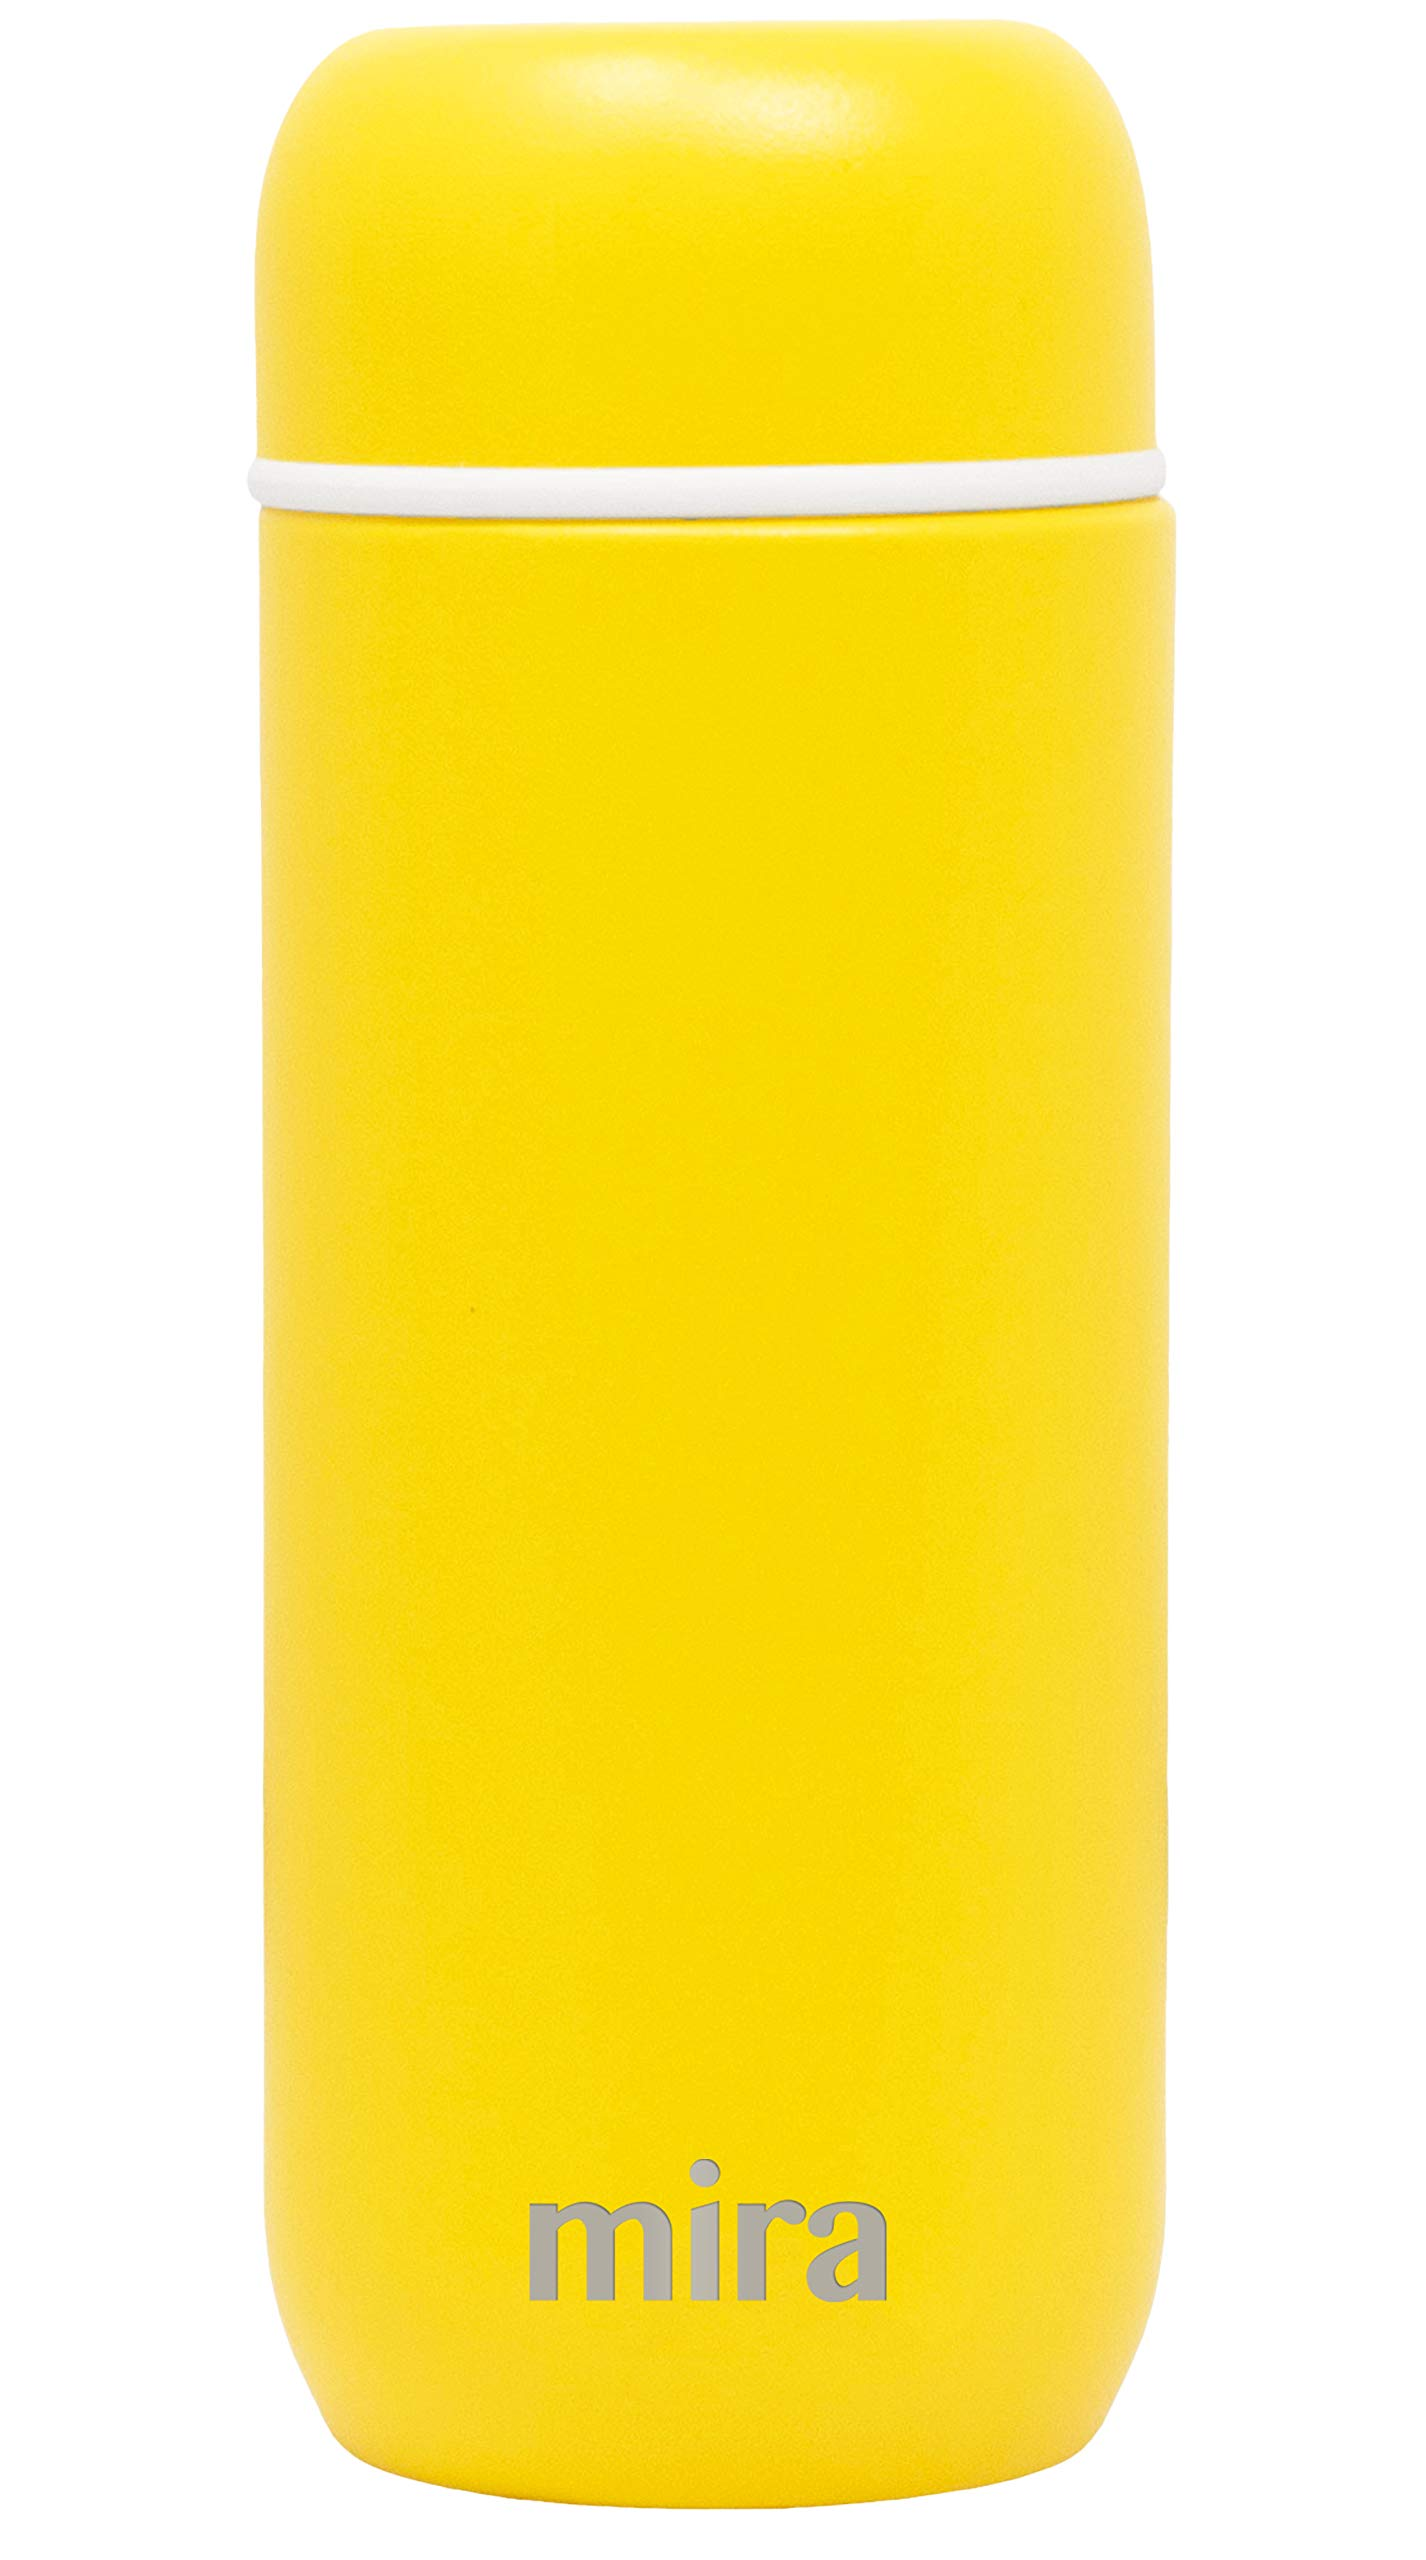 Mira 7 oz Insulated Small Thermos Flask | Kids Vacuum Insulated Water Bottle | Leak Proof & Spill Proof | Lemon Yellow